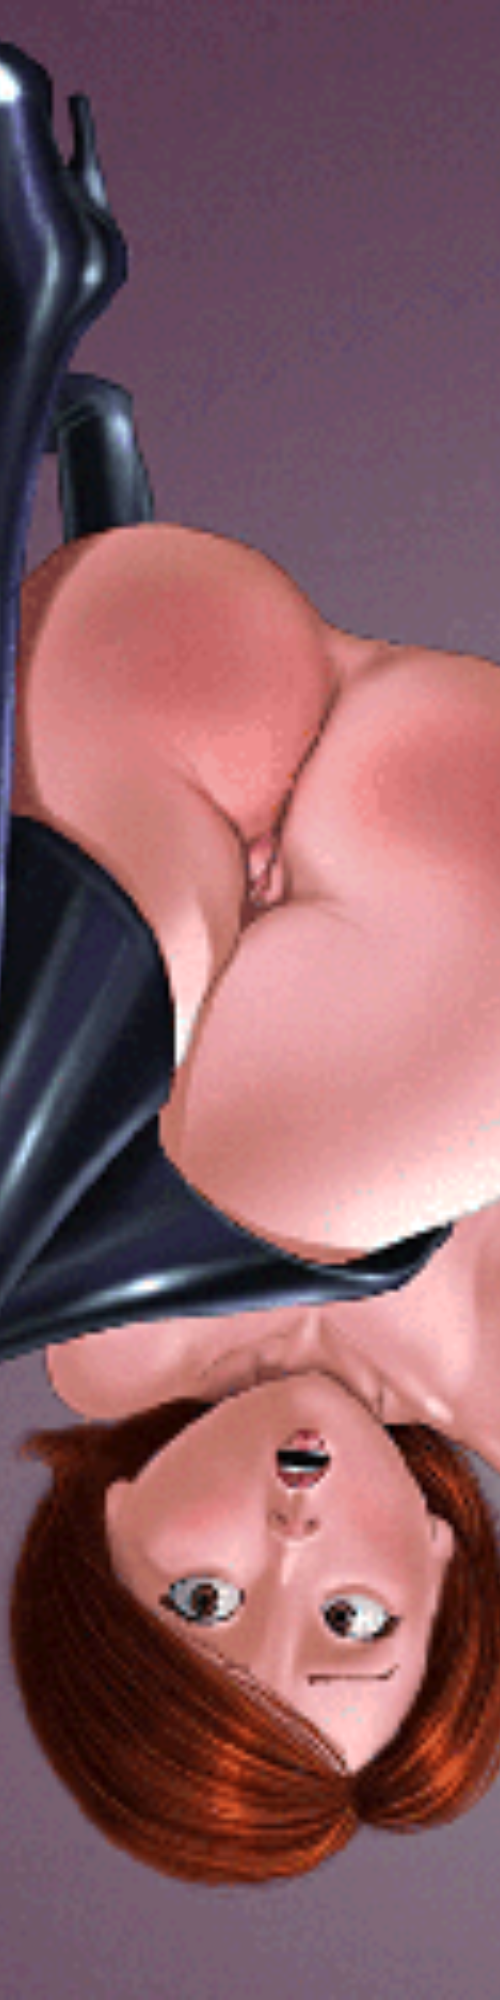 Gif- HELEN PARR pawg spank